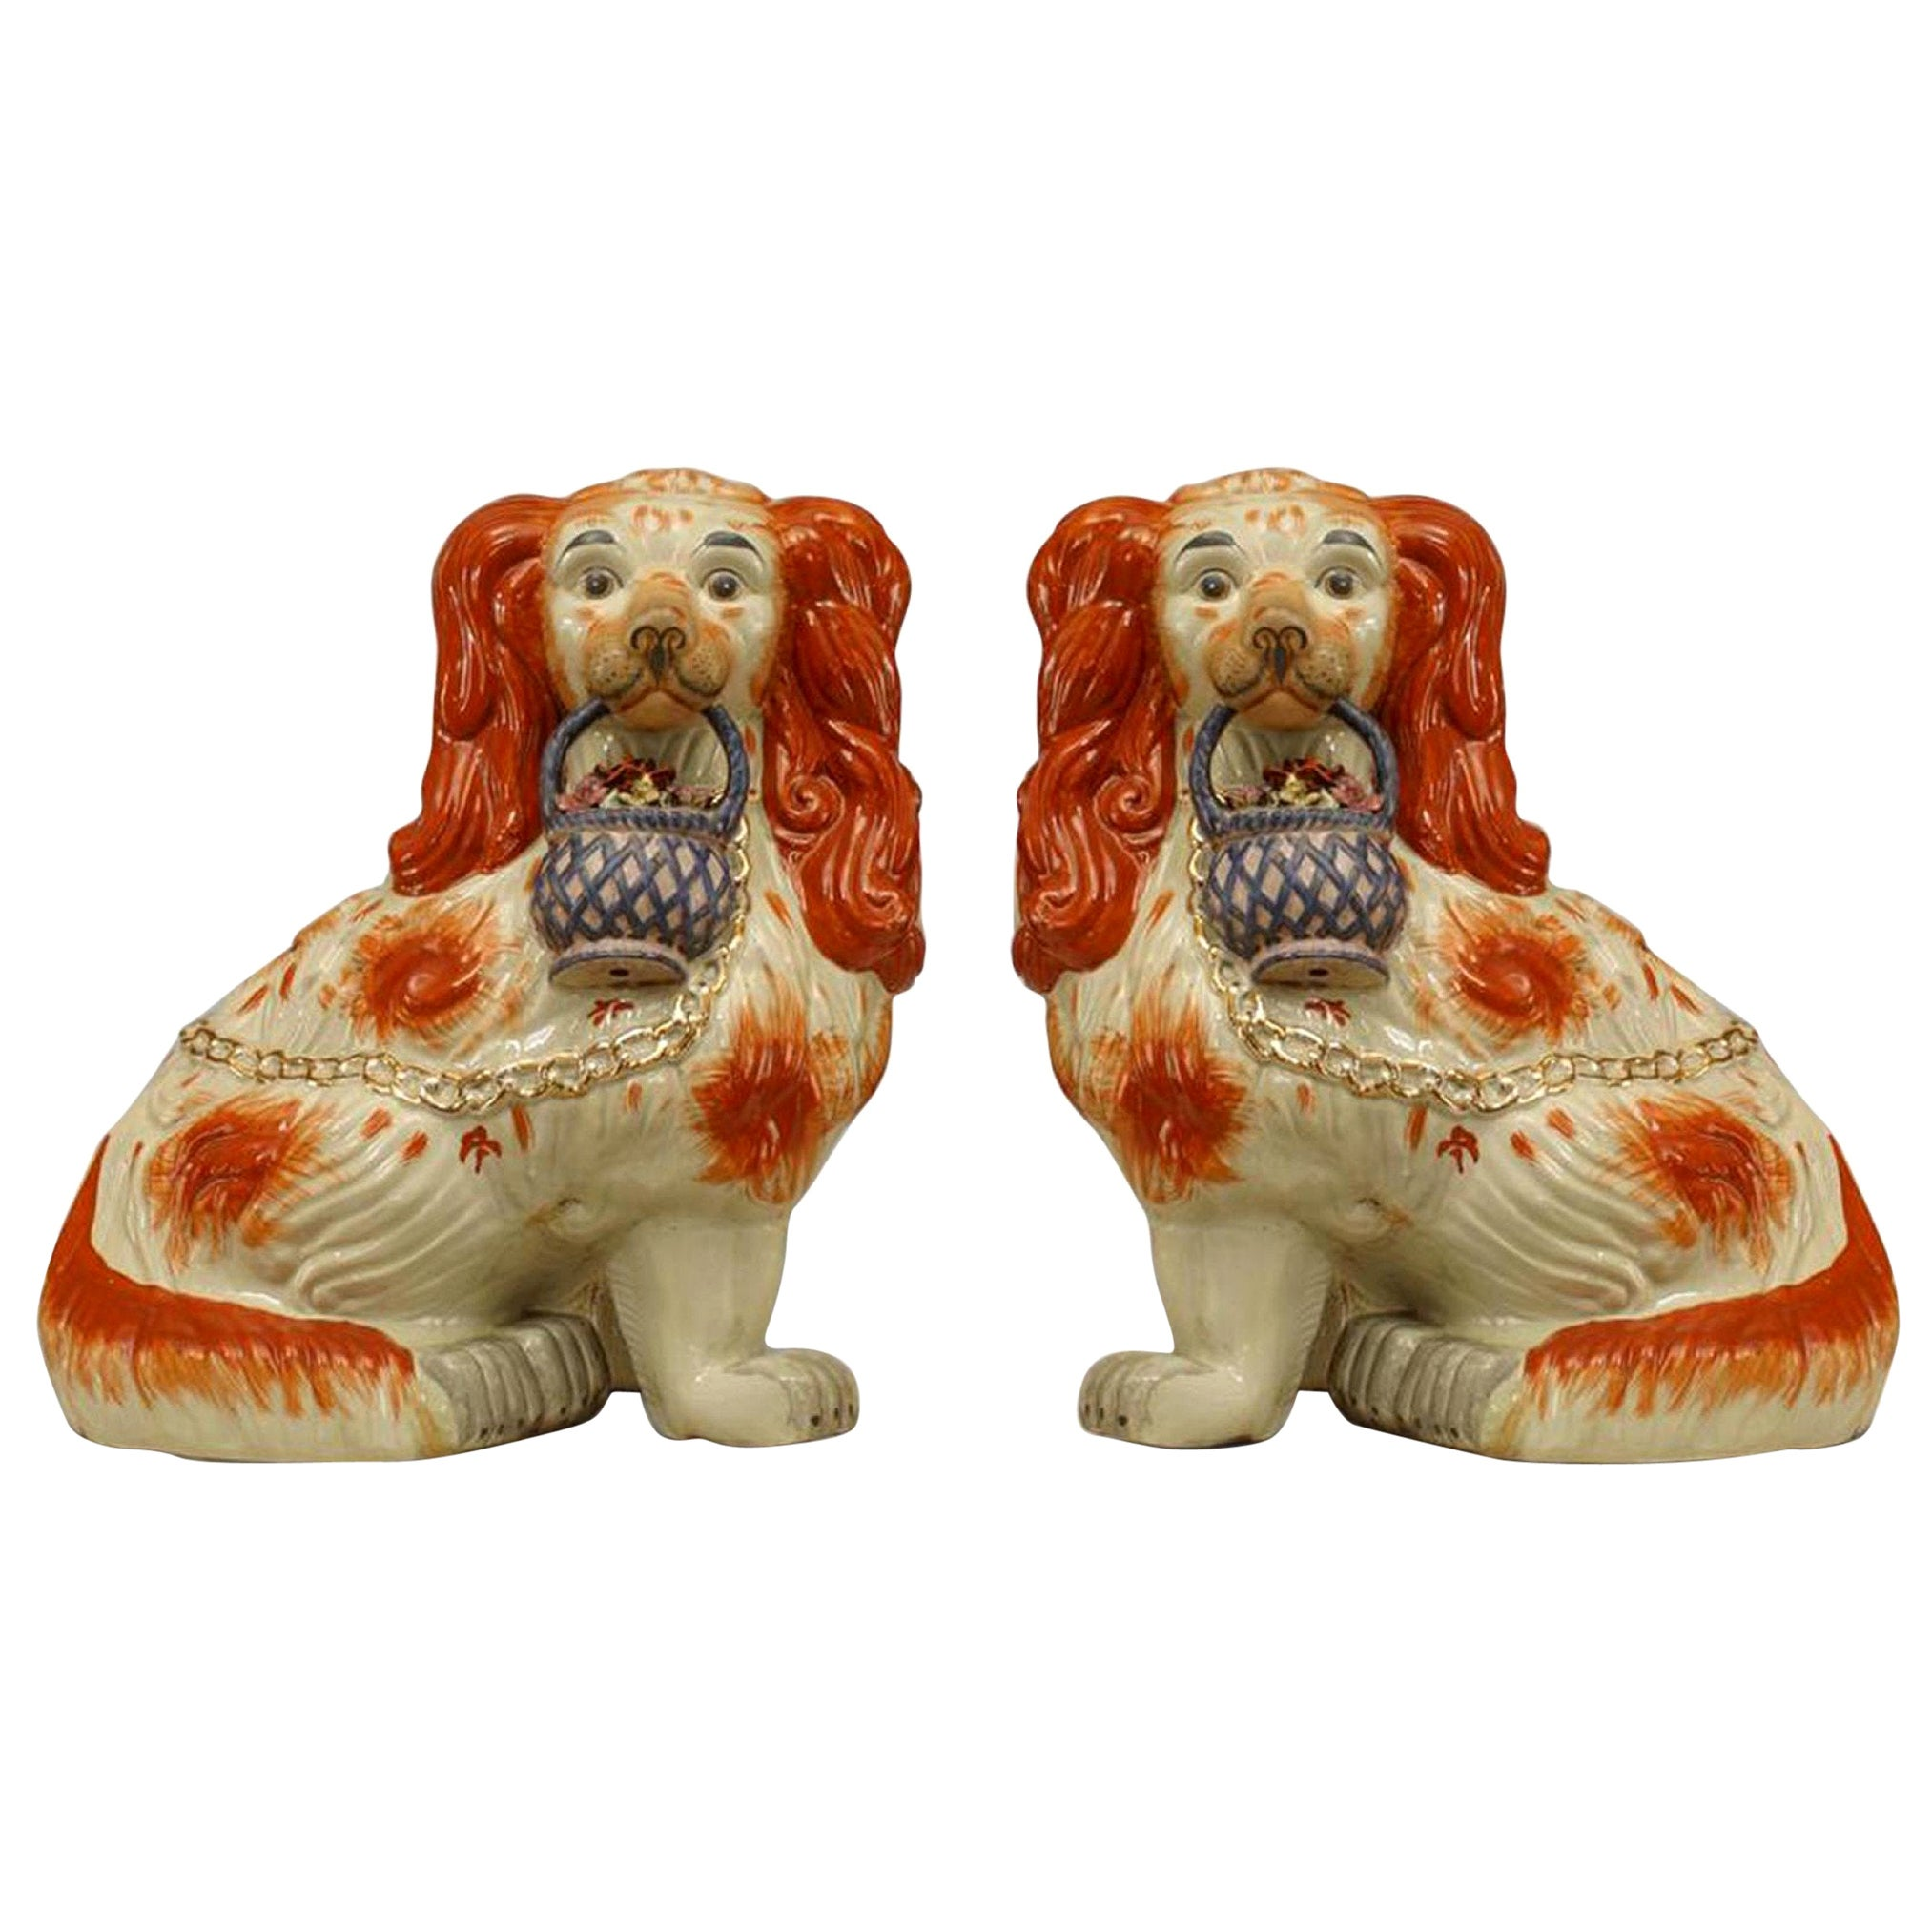 Pair of Victorian Porcelain Staffordshire Dog Figures